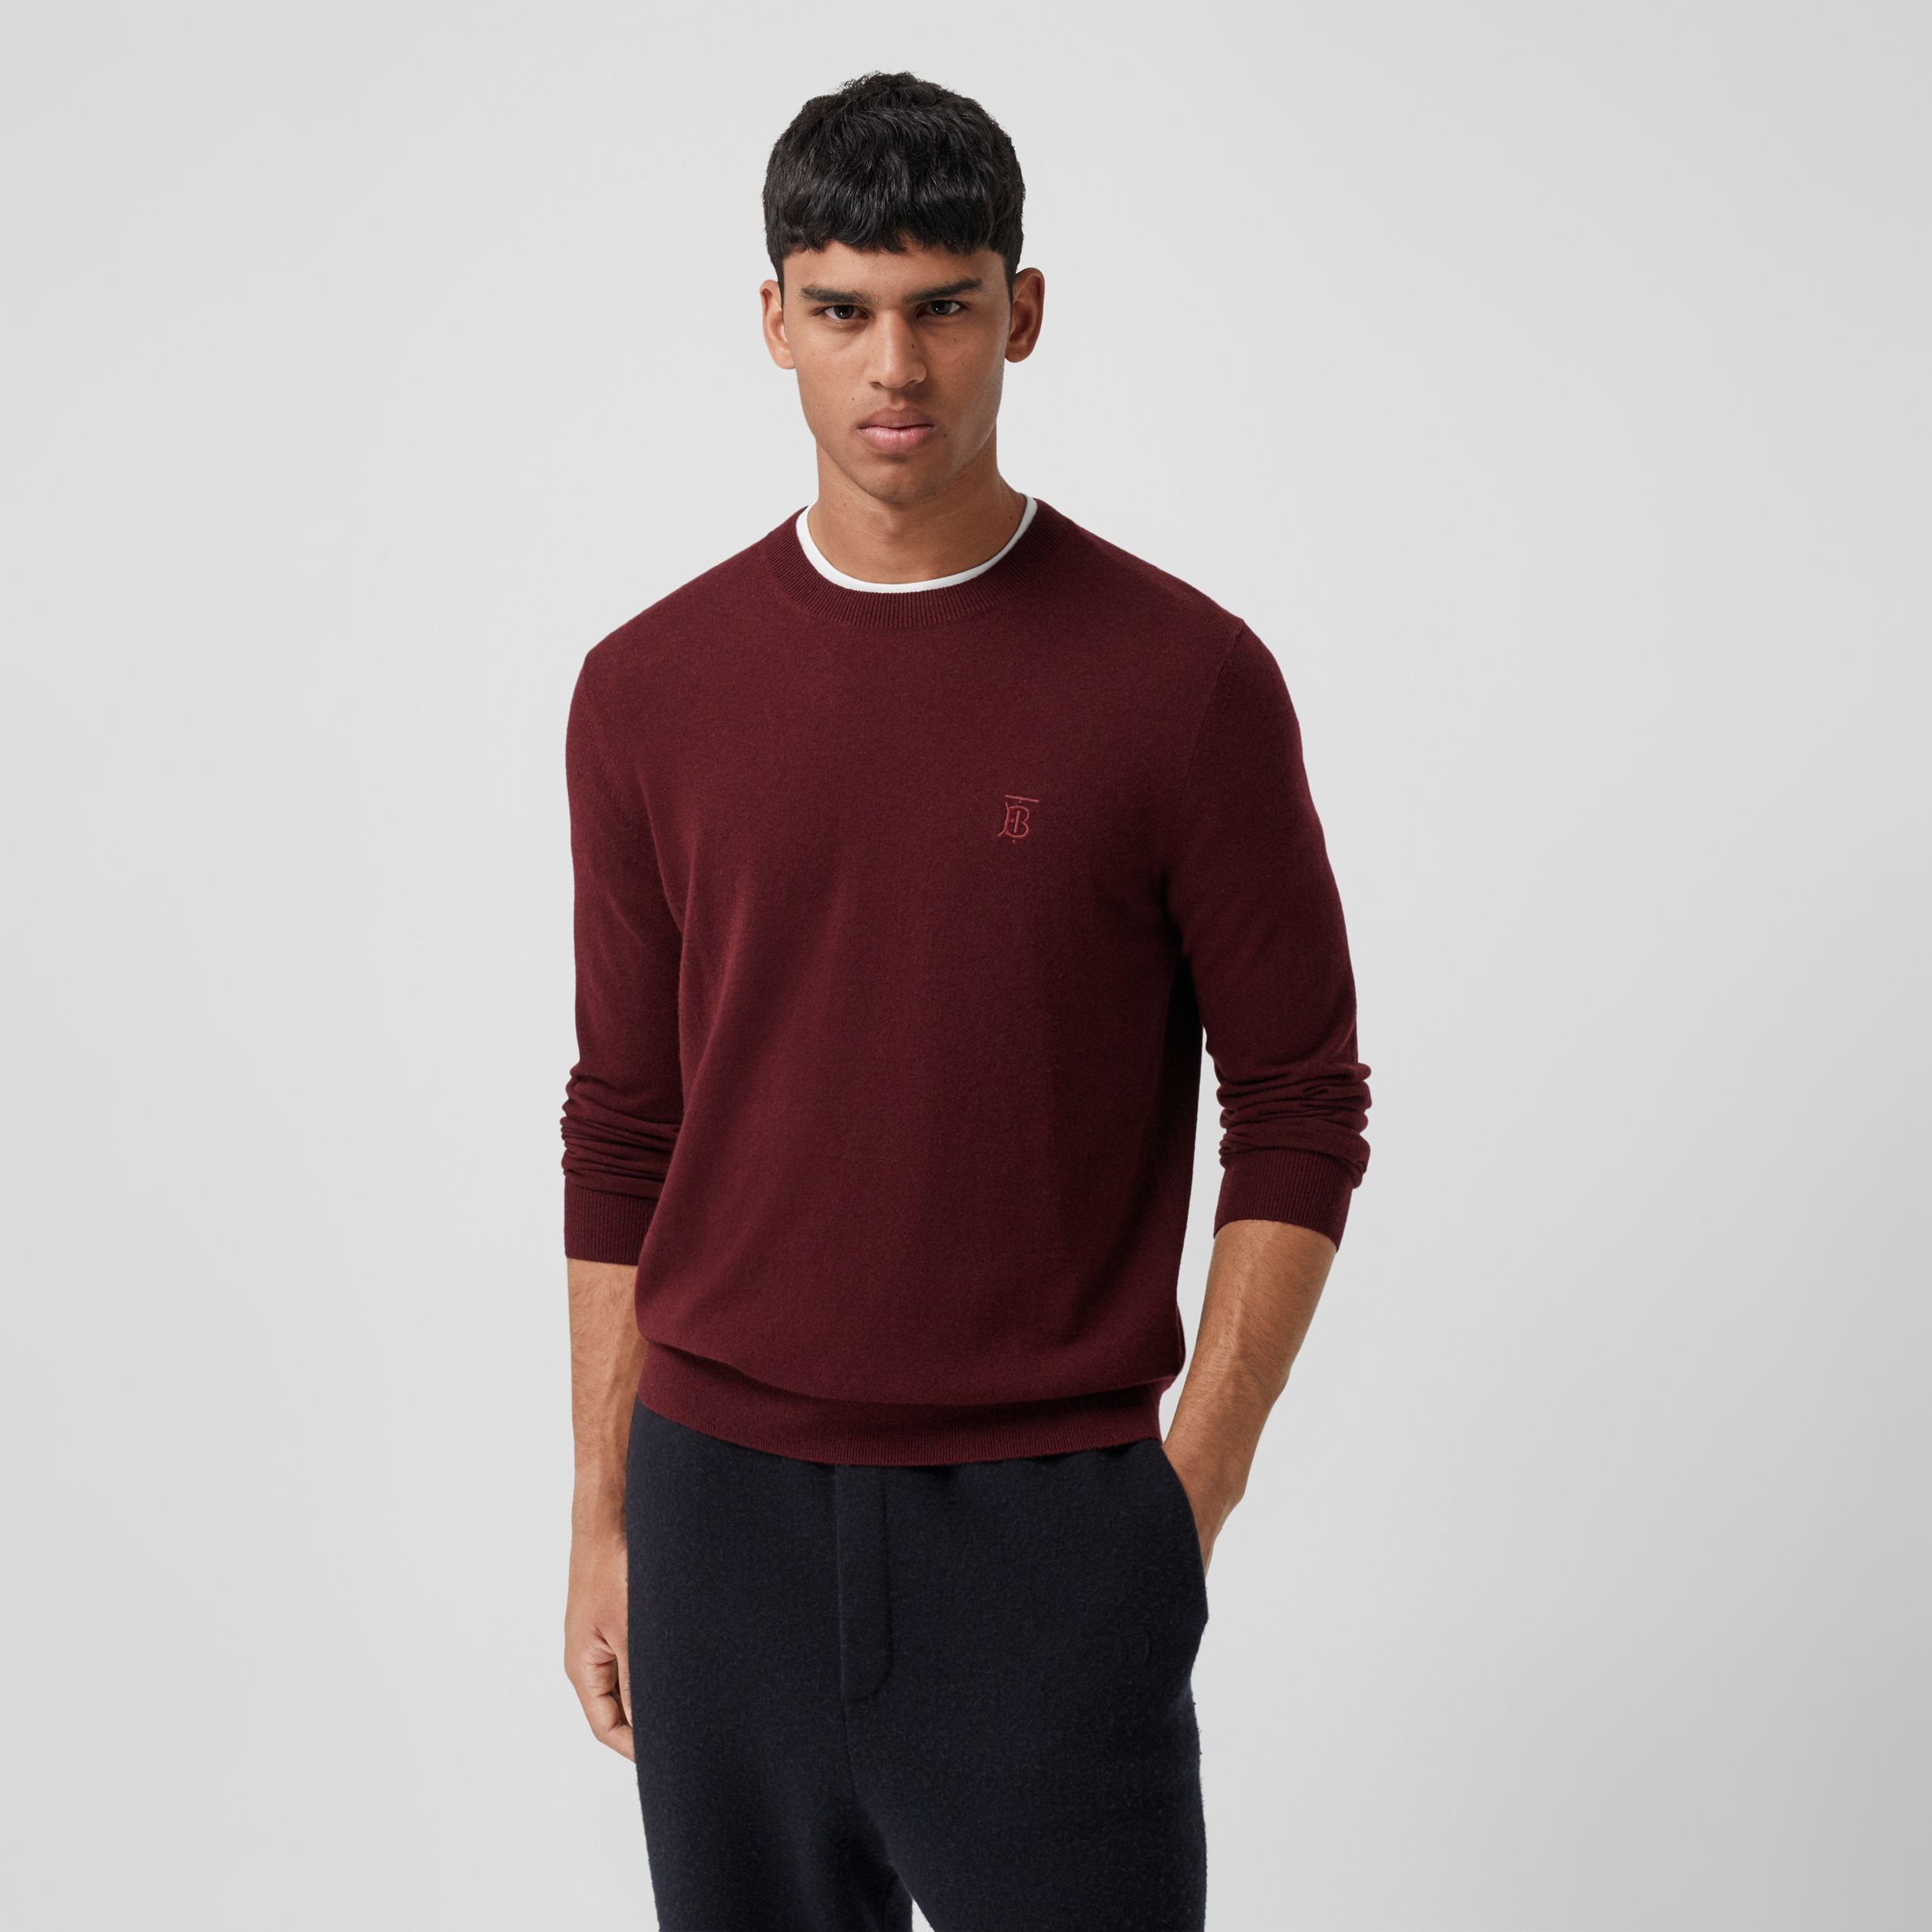 Monogram Motif Cashmere Sweater in Deep Merlot - Men | Burberry United States - 1